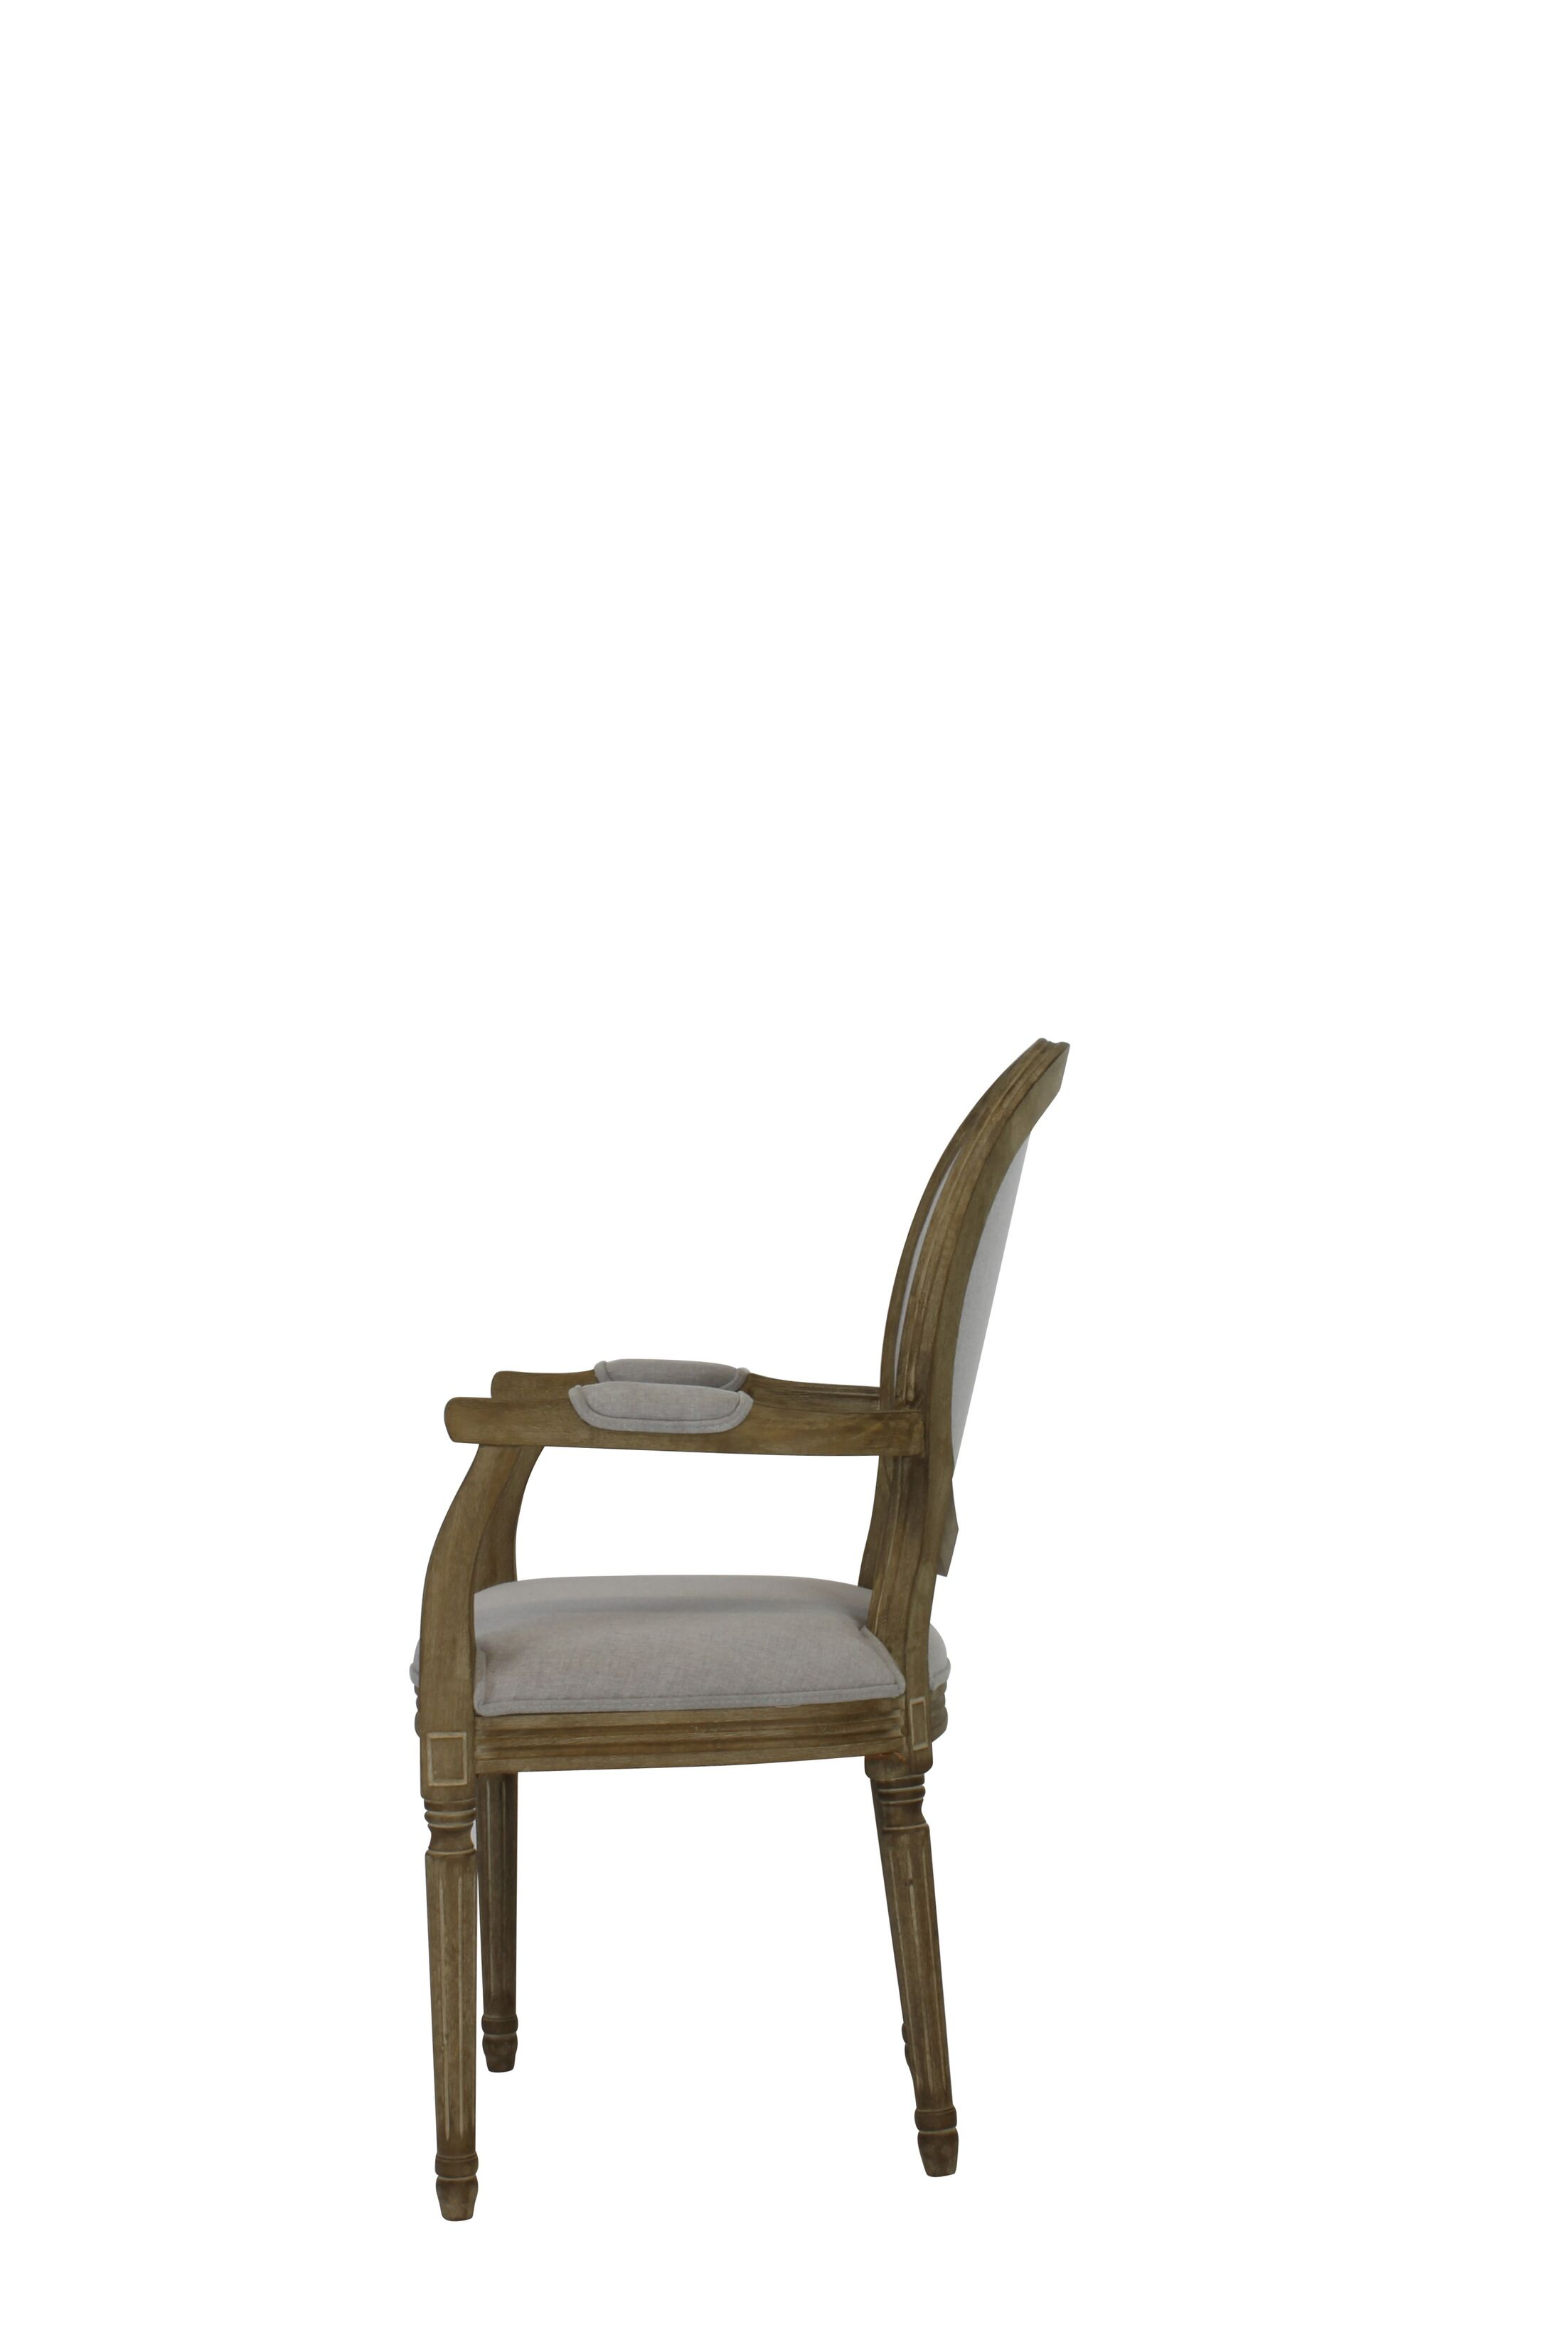 Auclair Weathered Upholstered Dining Chair Upholstery Color: Beige, Finish: Espresso